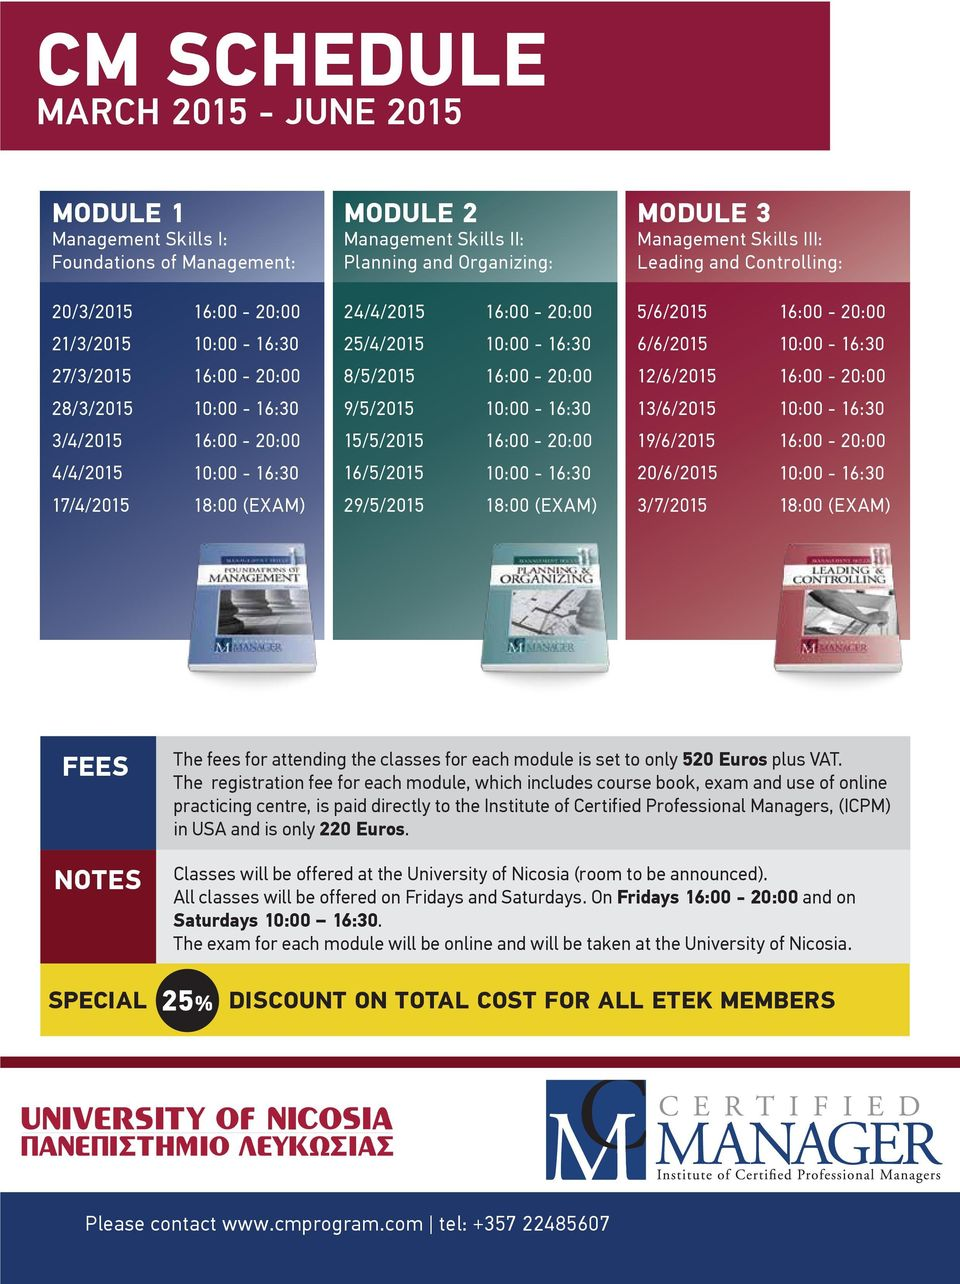 29/5/2015 3/7/2015 FEES NOTES SPECIAL The fees for attending the classes for each module is set to only 520 Euros plus VAT.